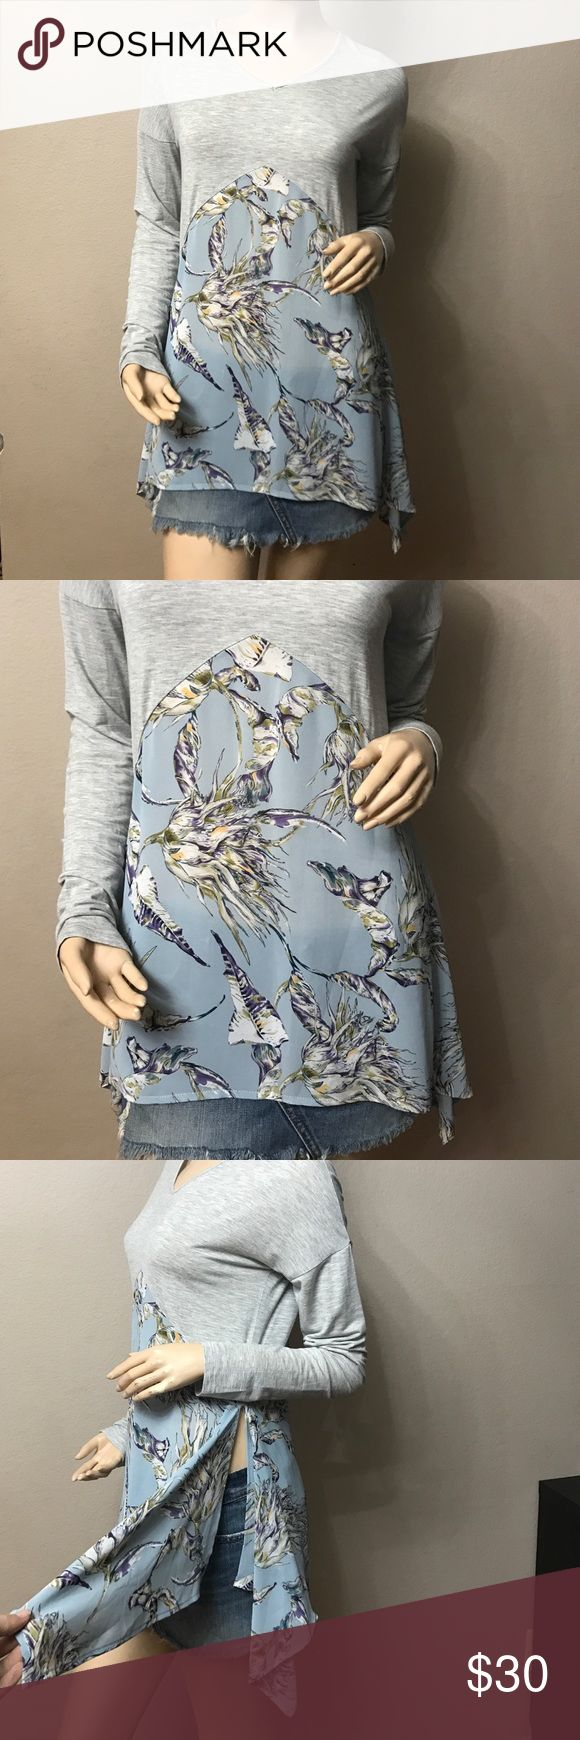 NWOT😍GRAY FLORAL TOP WITH SIDE SLITS😍 Very cute floral top with side slits on boths sides, content: 100% cotton Floral part 100% Polyester She and Sky Tops Blouses